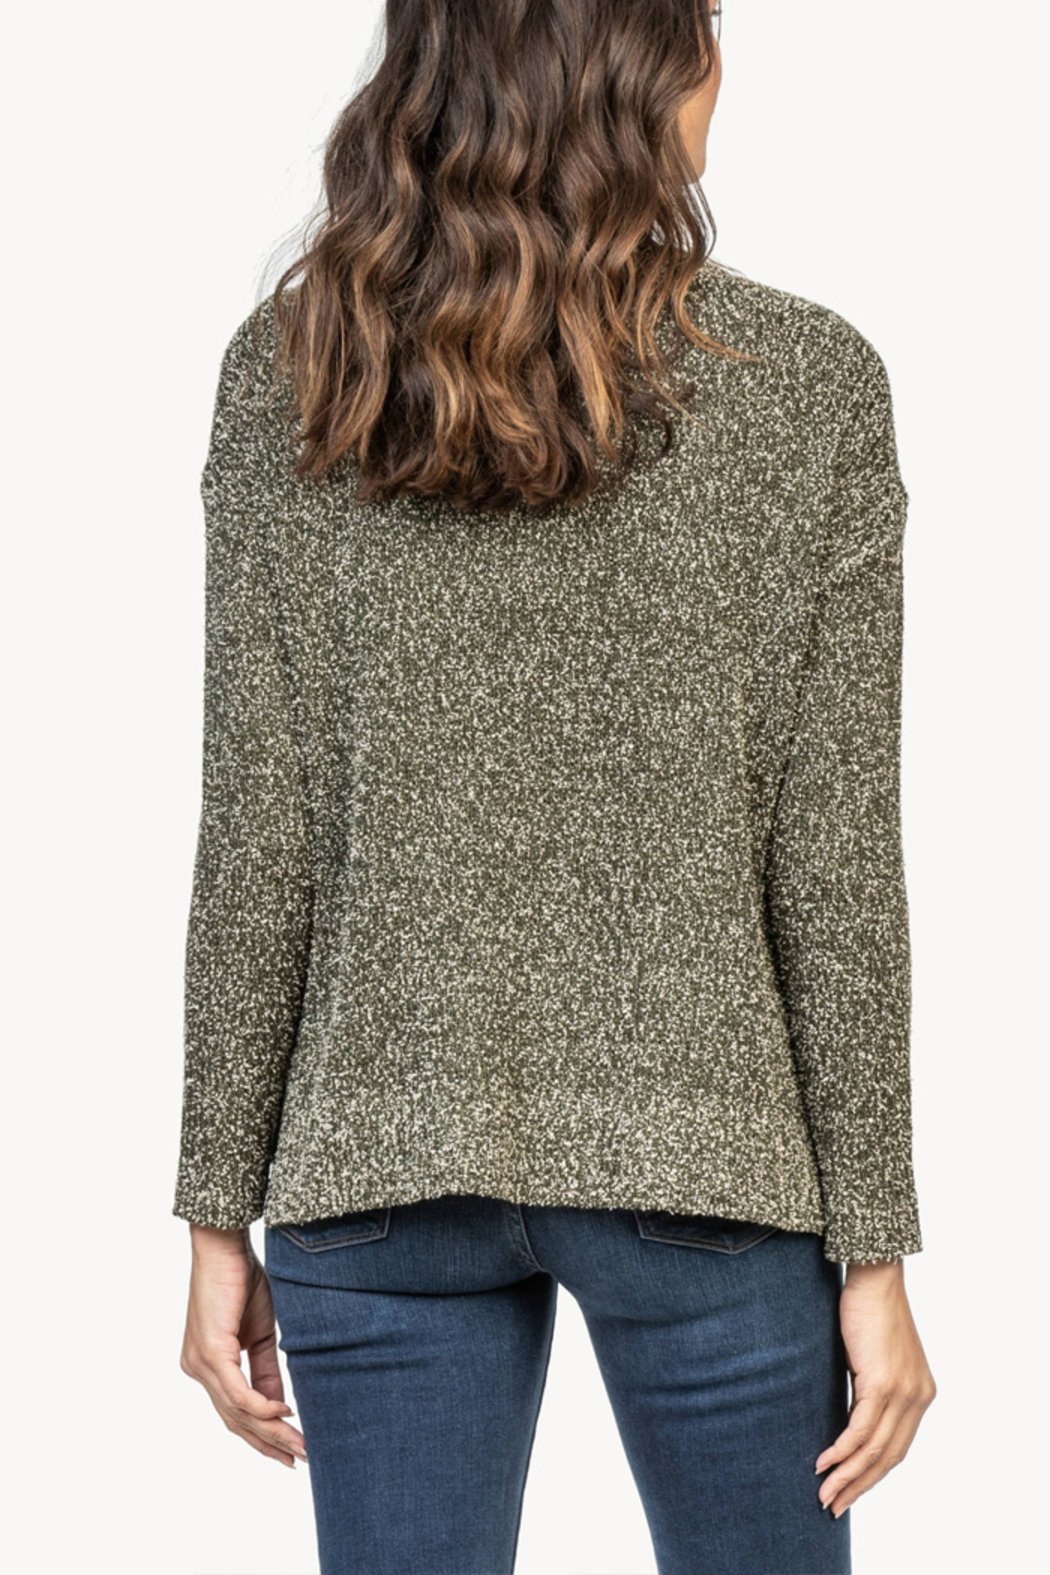 Lilla P Flecked Cotton Blend Pullover Sweater - Front Full Image